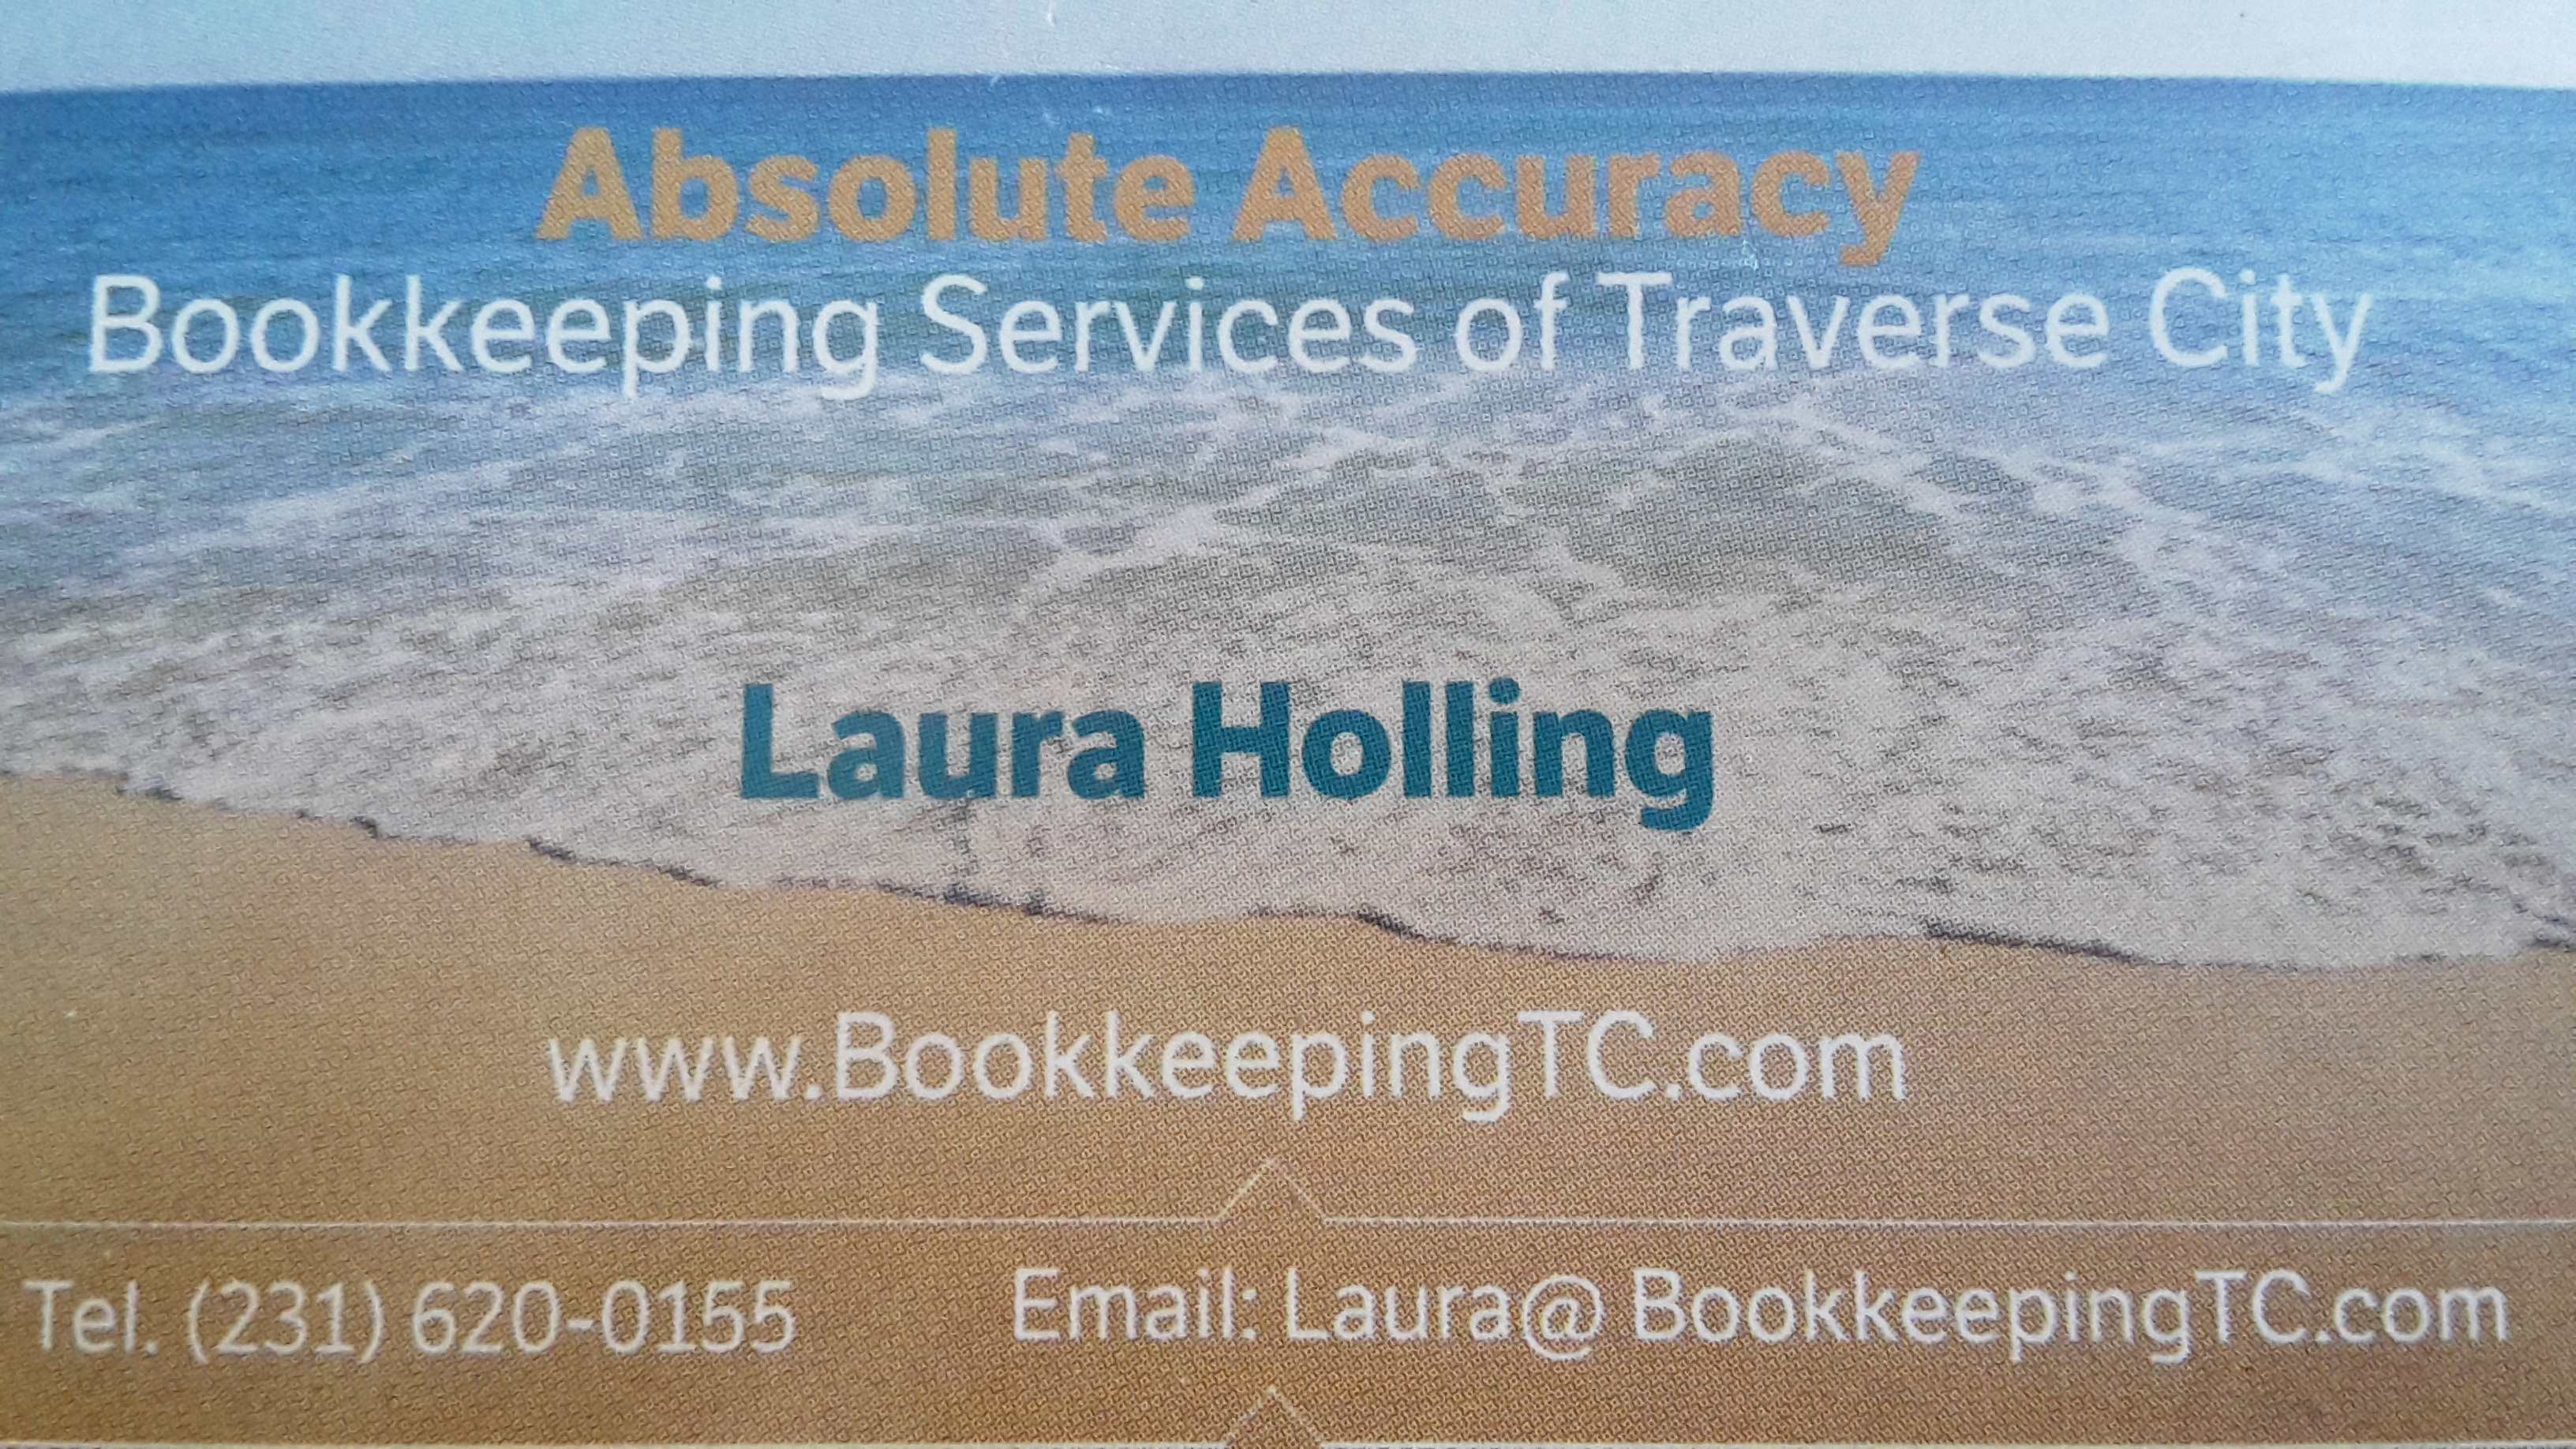 Absolute Accuracy Bookkeeping Services